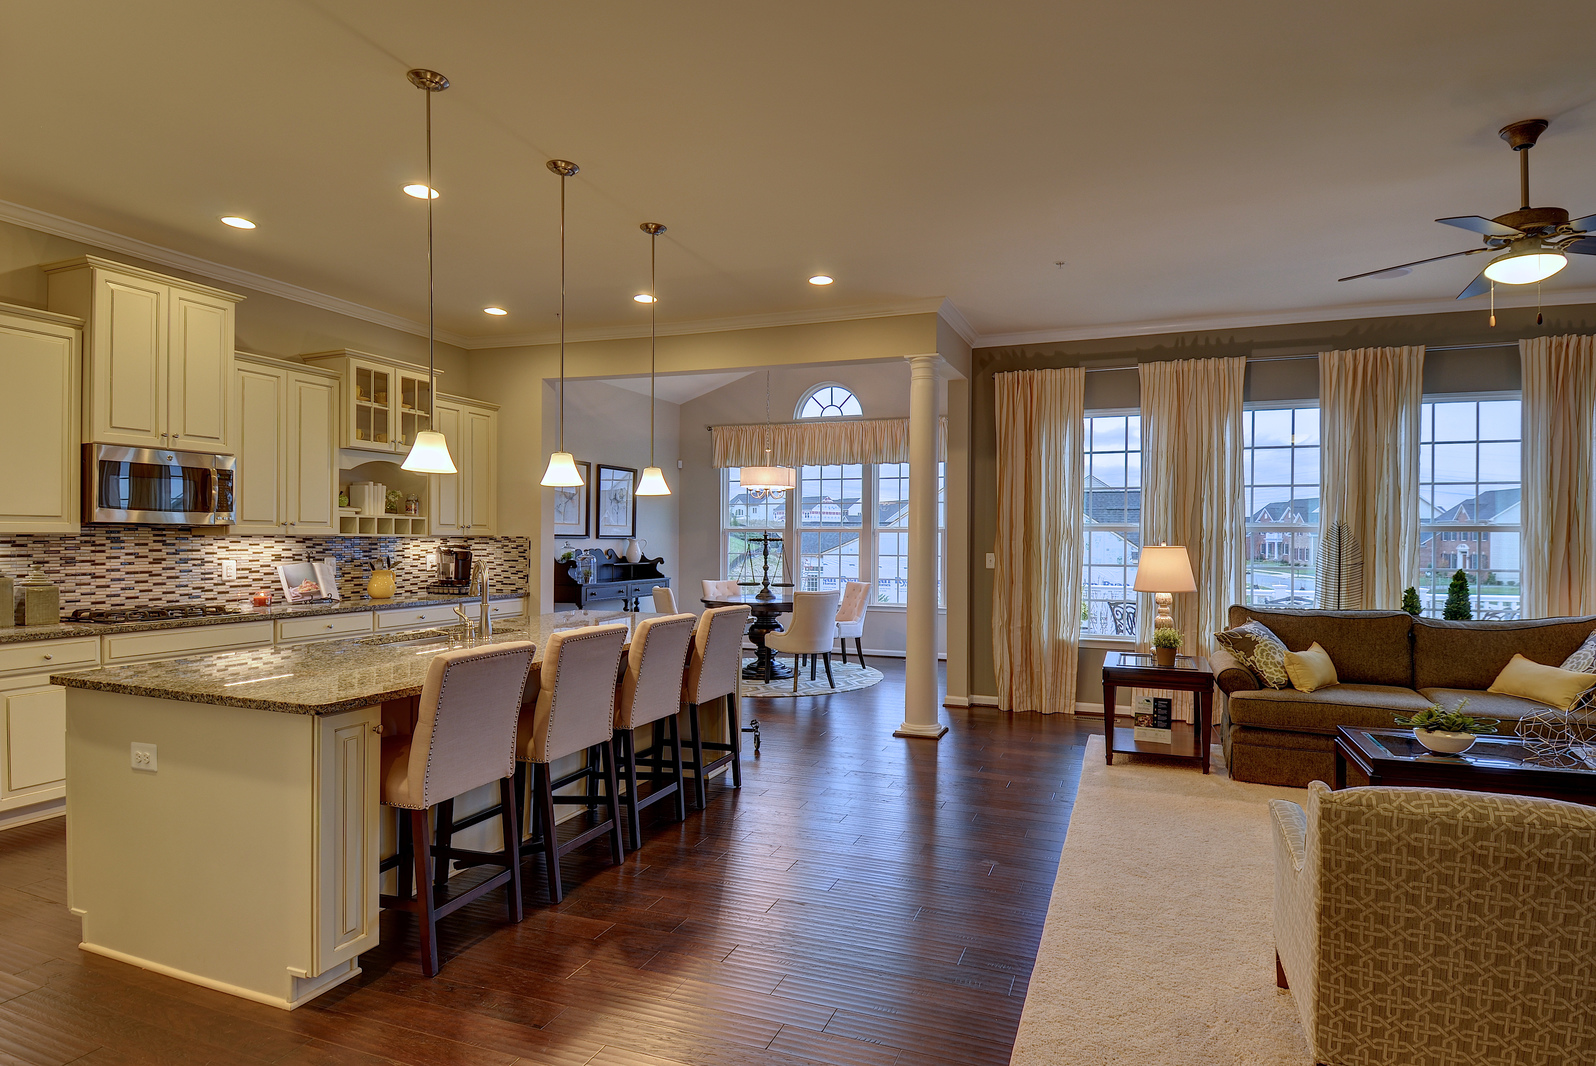 New springmanor home model at laurel grove one level for Heartland homes pittsburgh floor plans